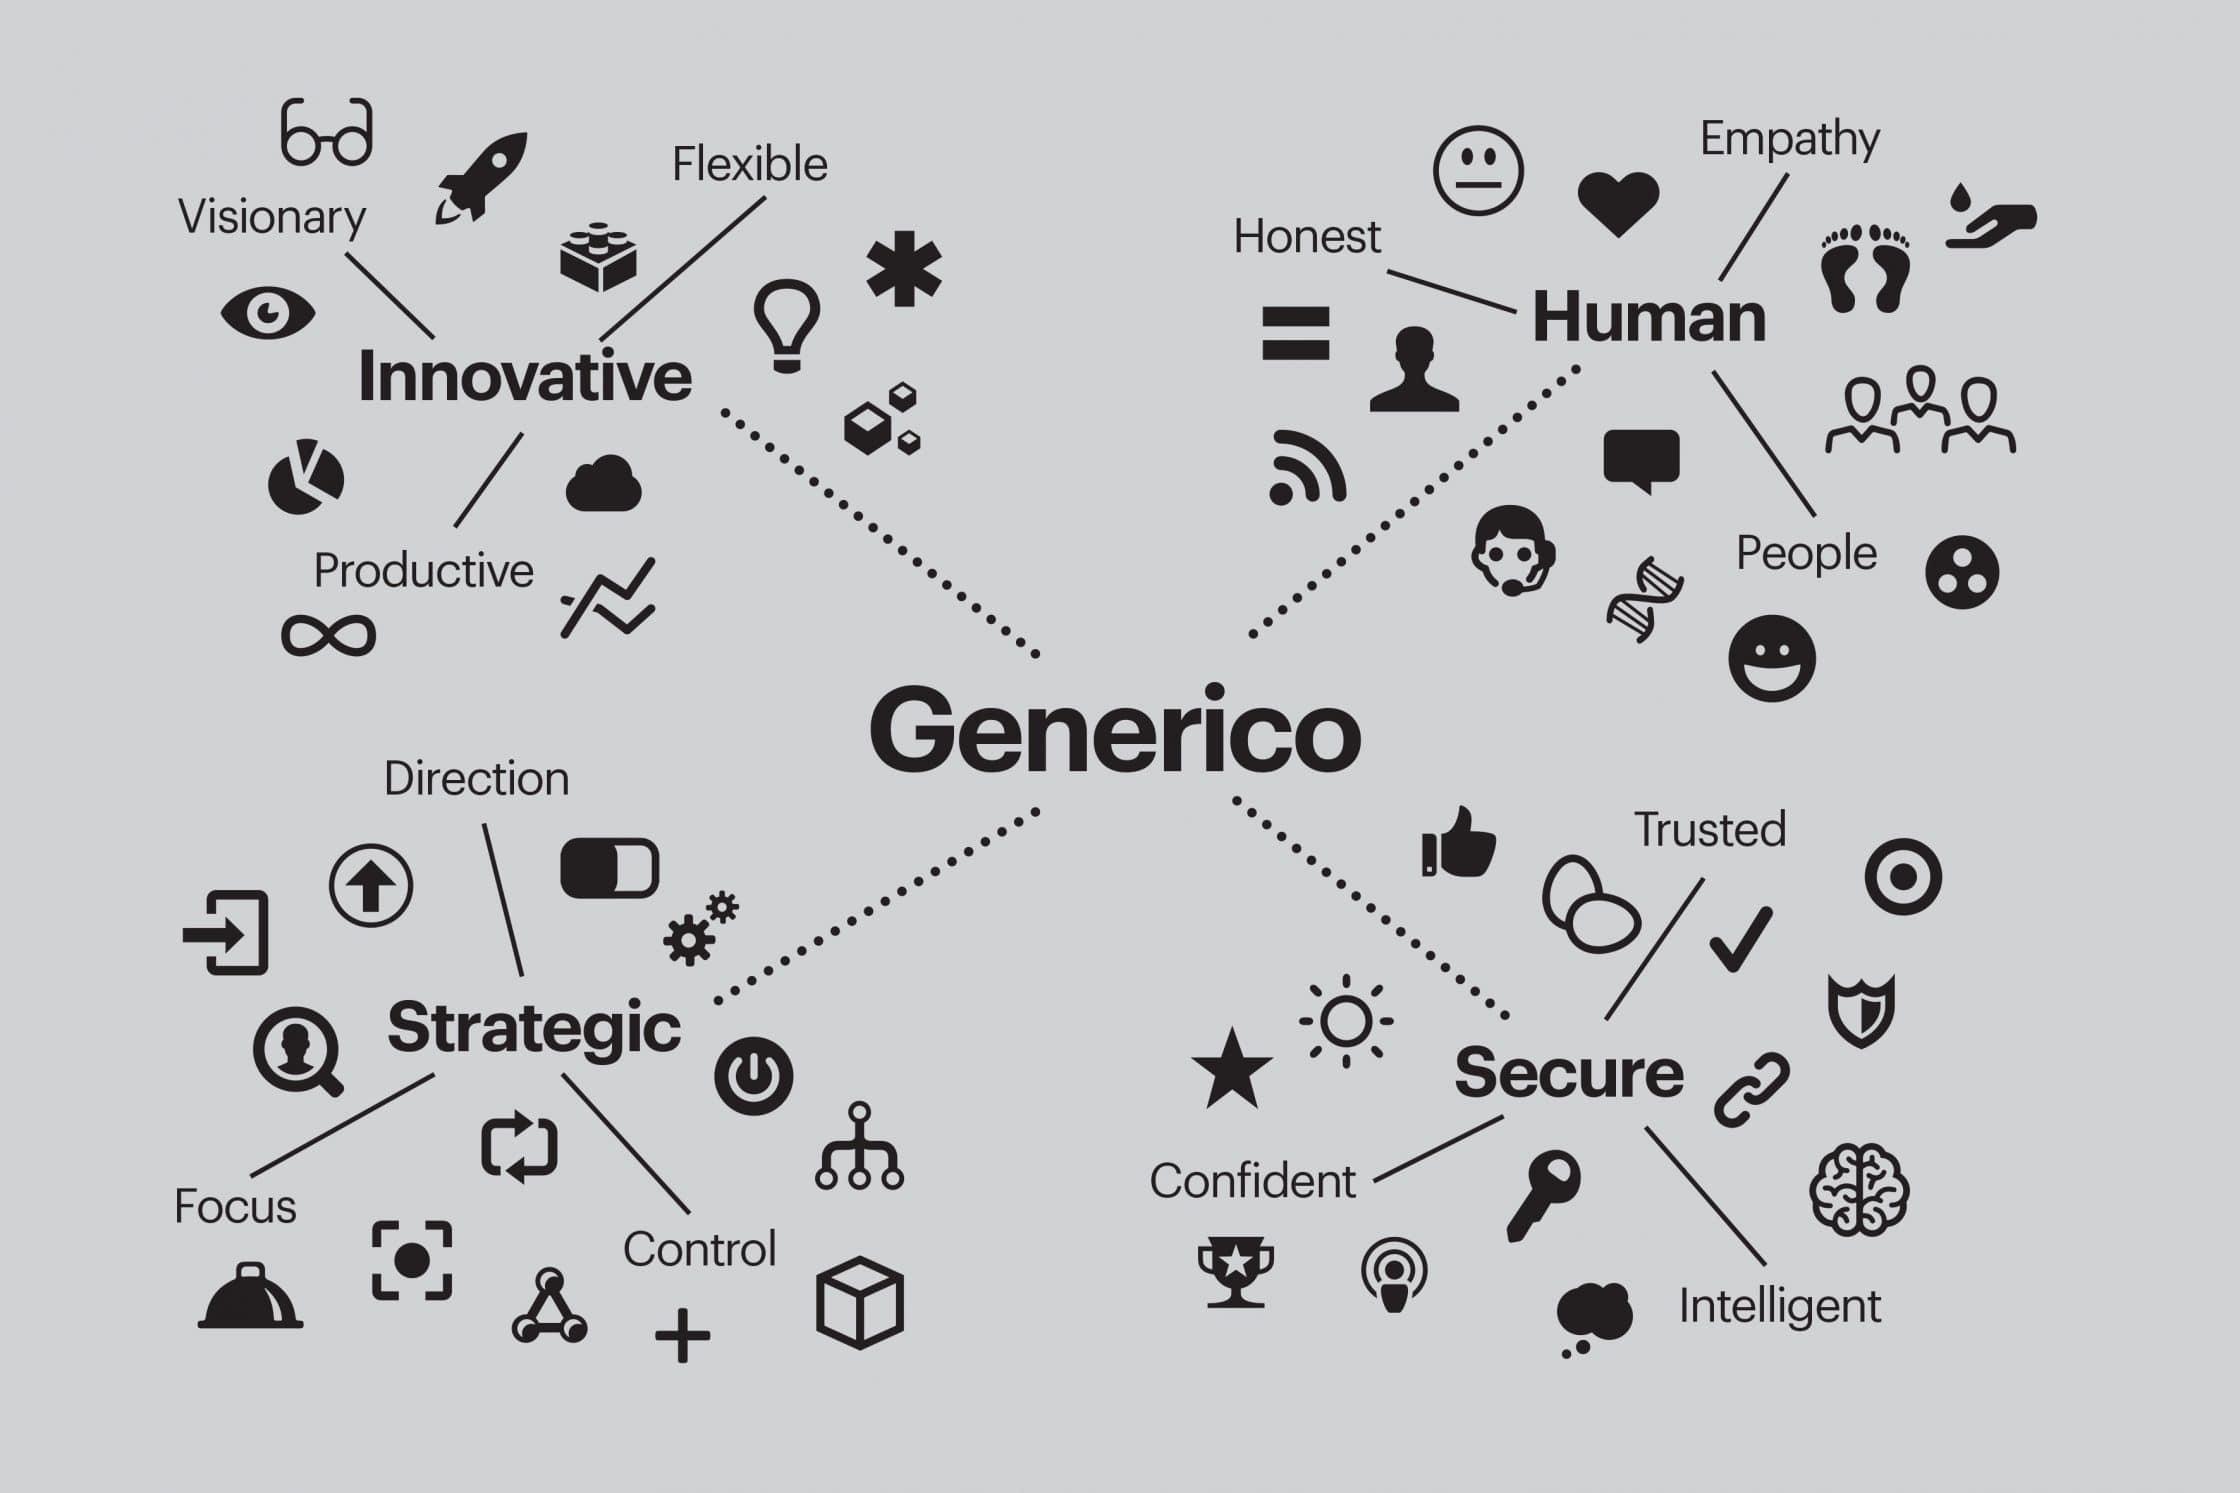 Spider diagram showing what traits Generico's logo aims to display.